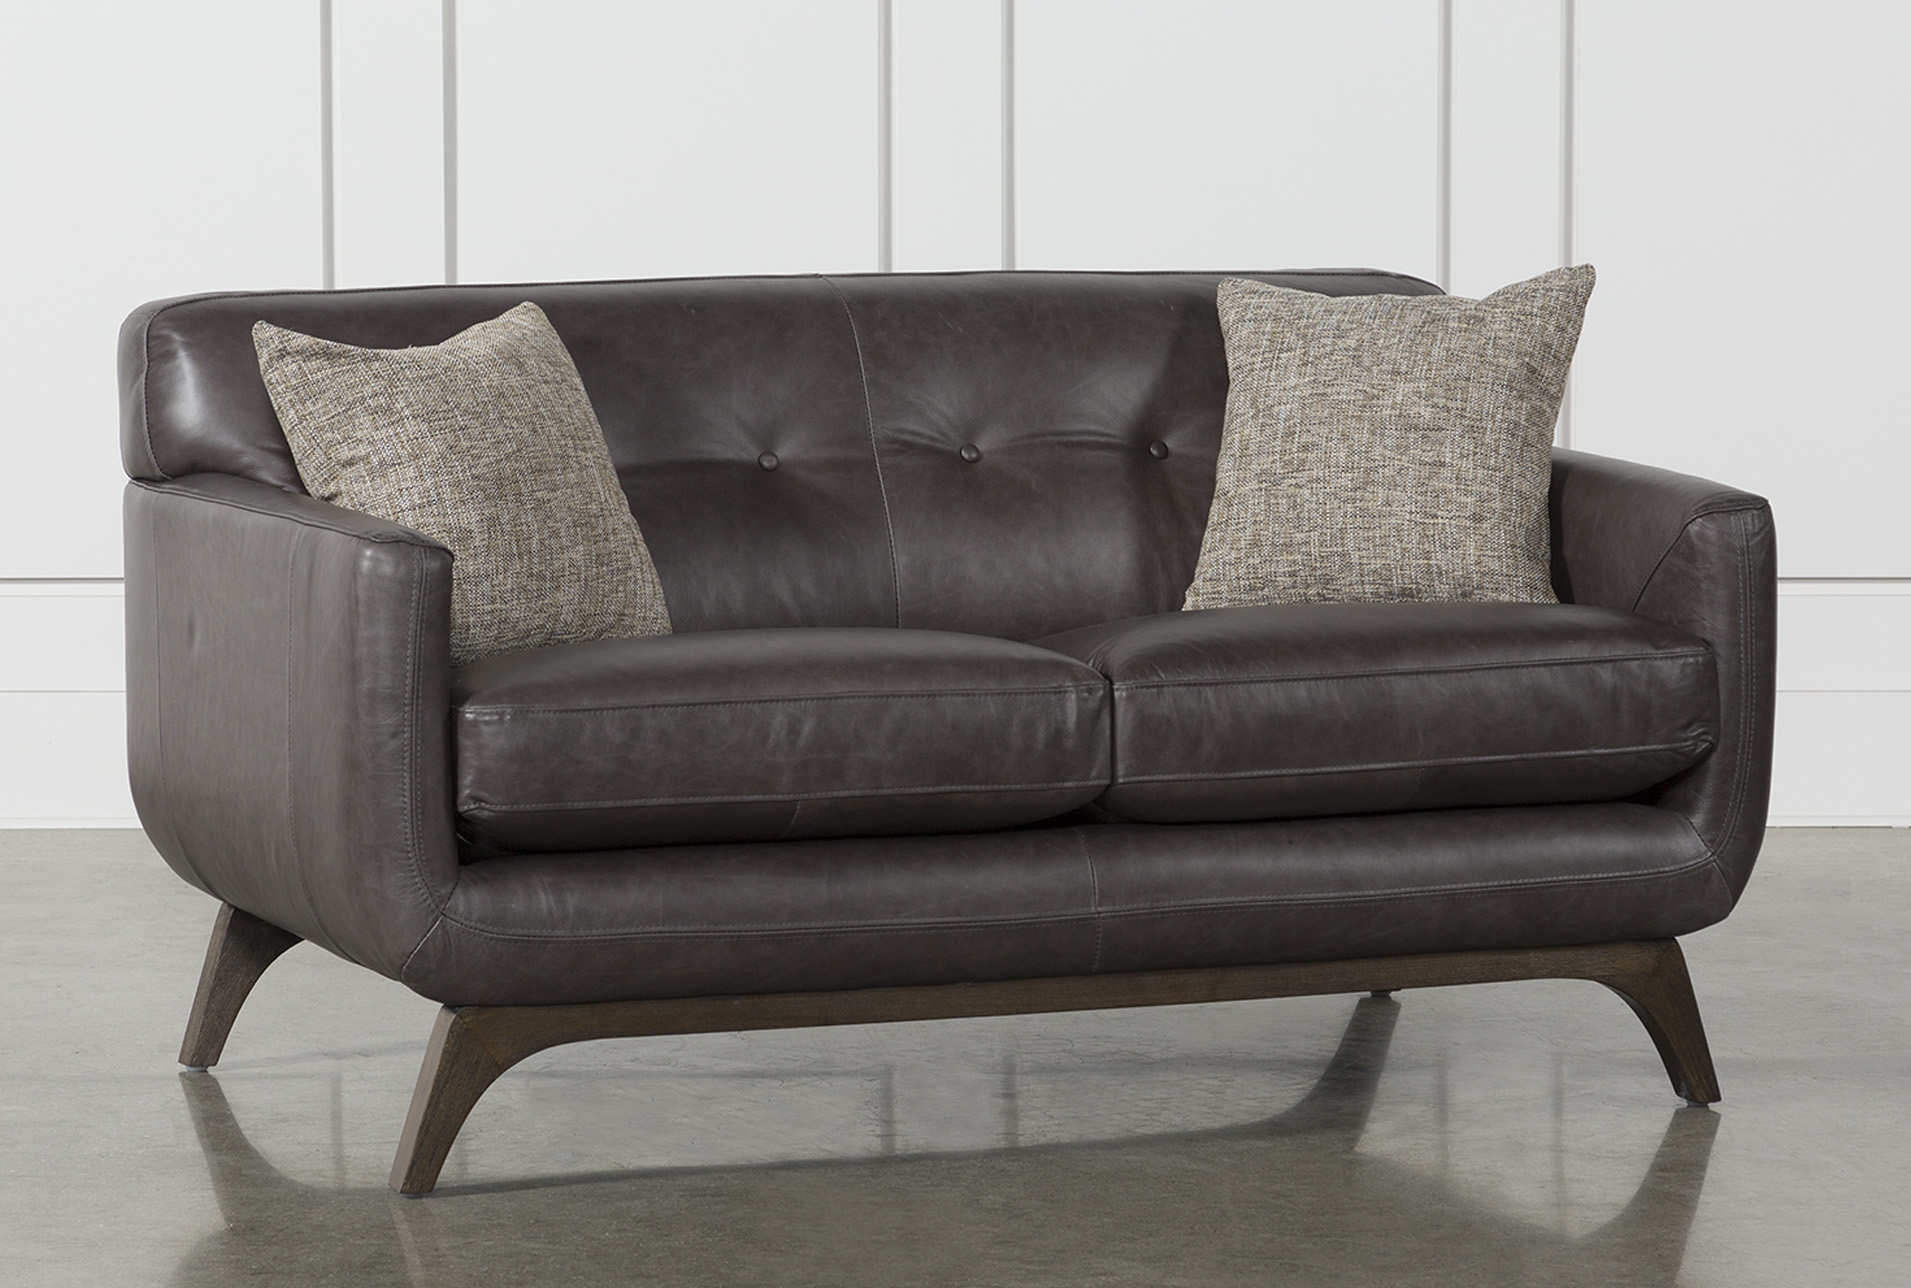 Cosette Leather Loveseat (Qty: 1) has been successfully added to your Cart.